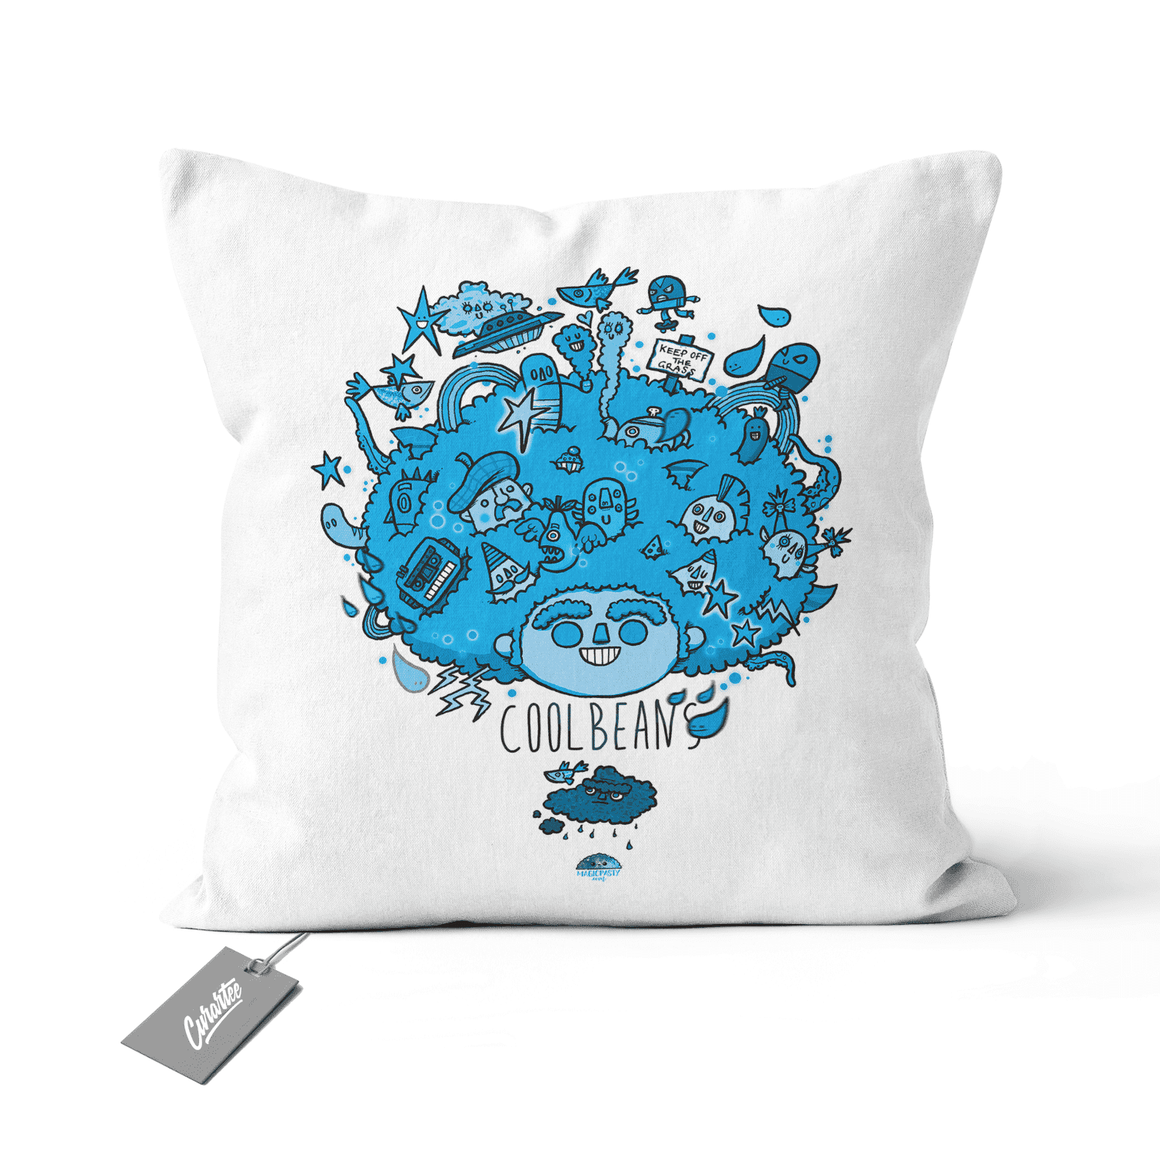 Big Hair Blue Cushion - Premium Artwear Curartee